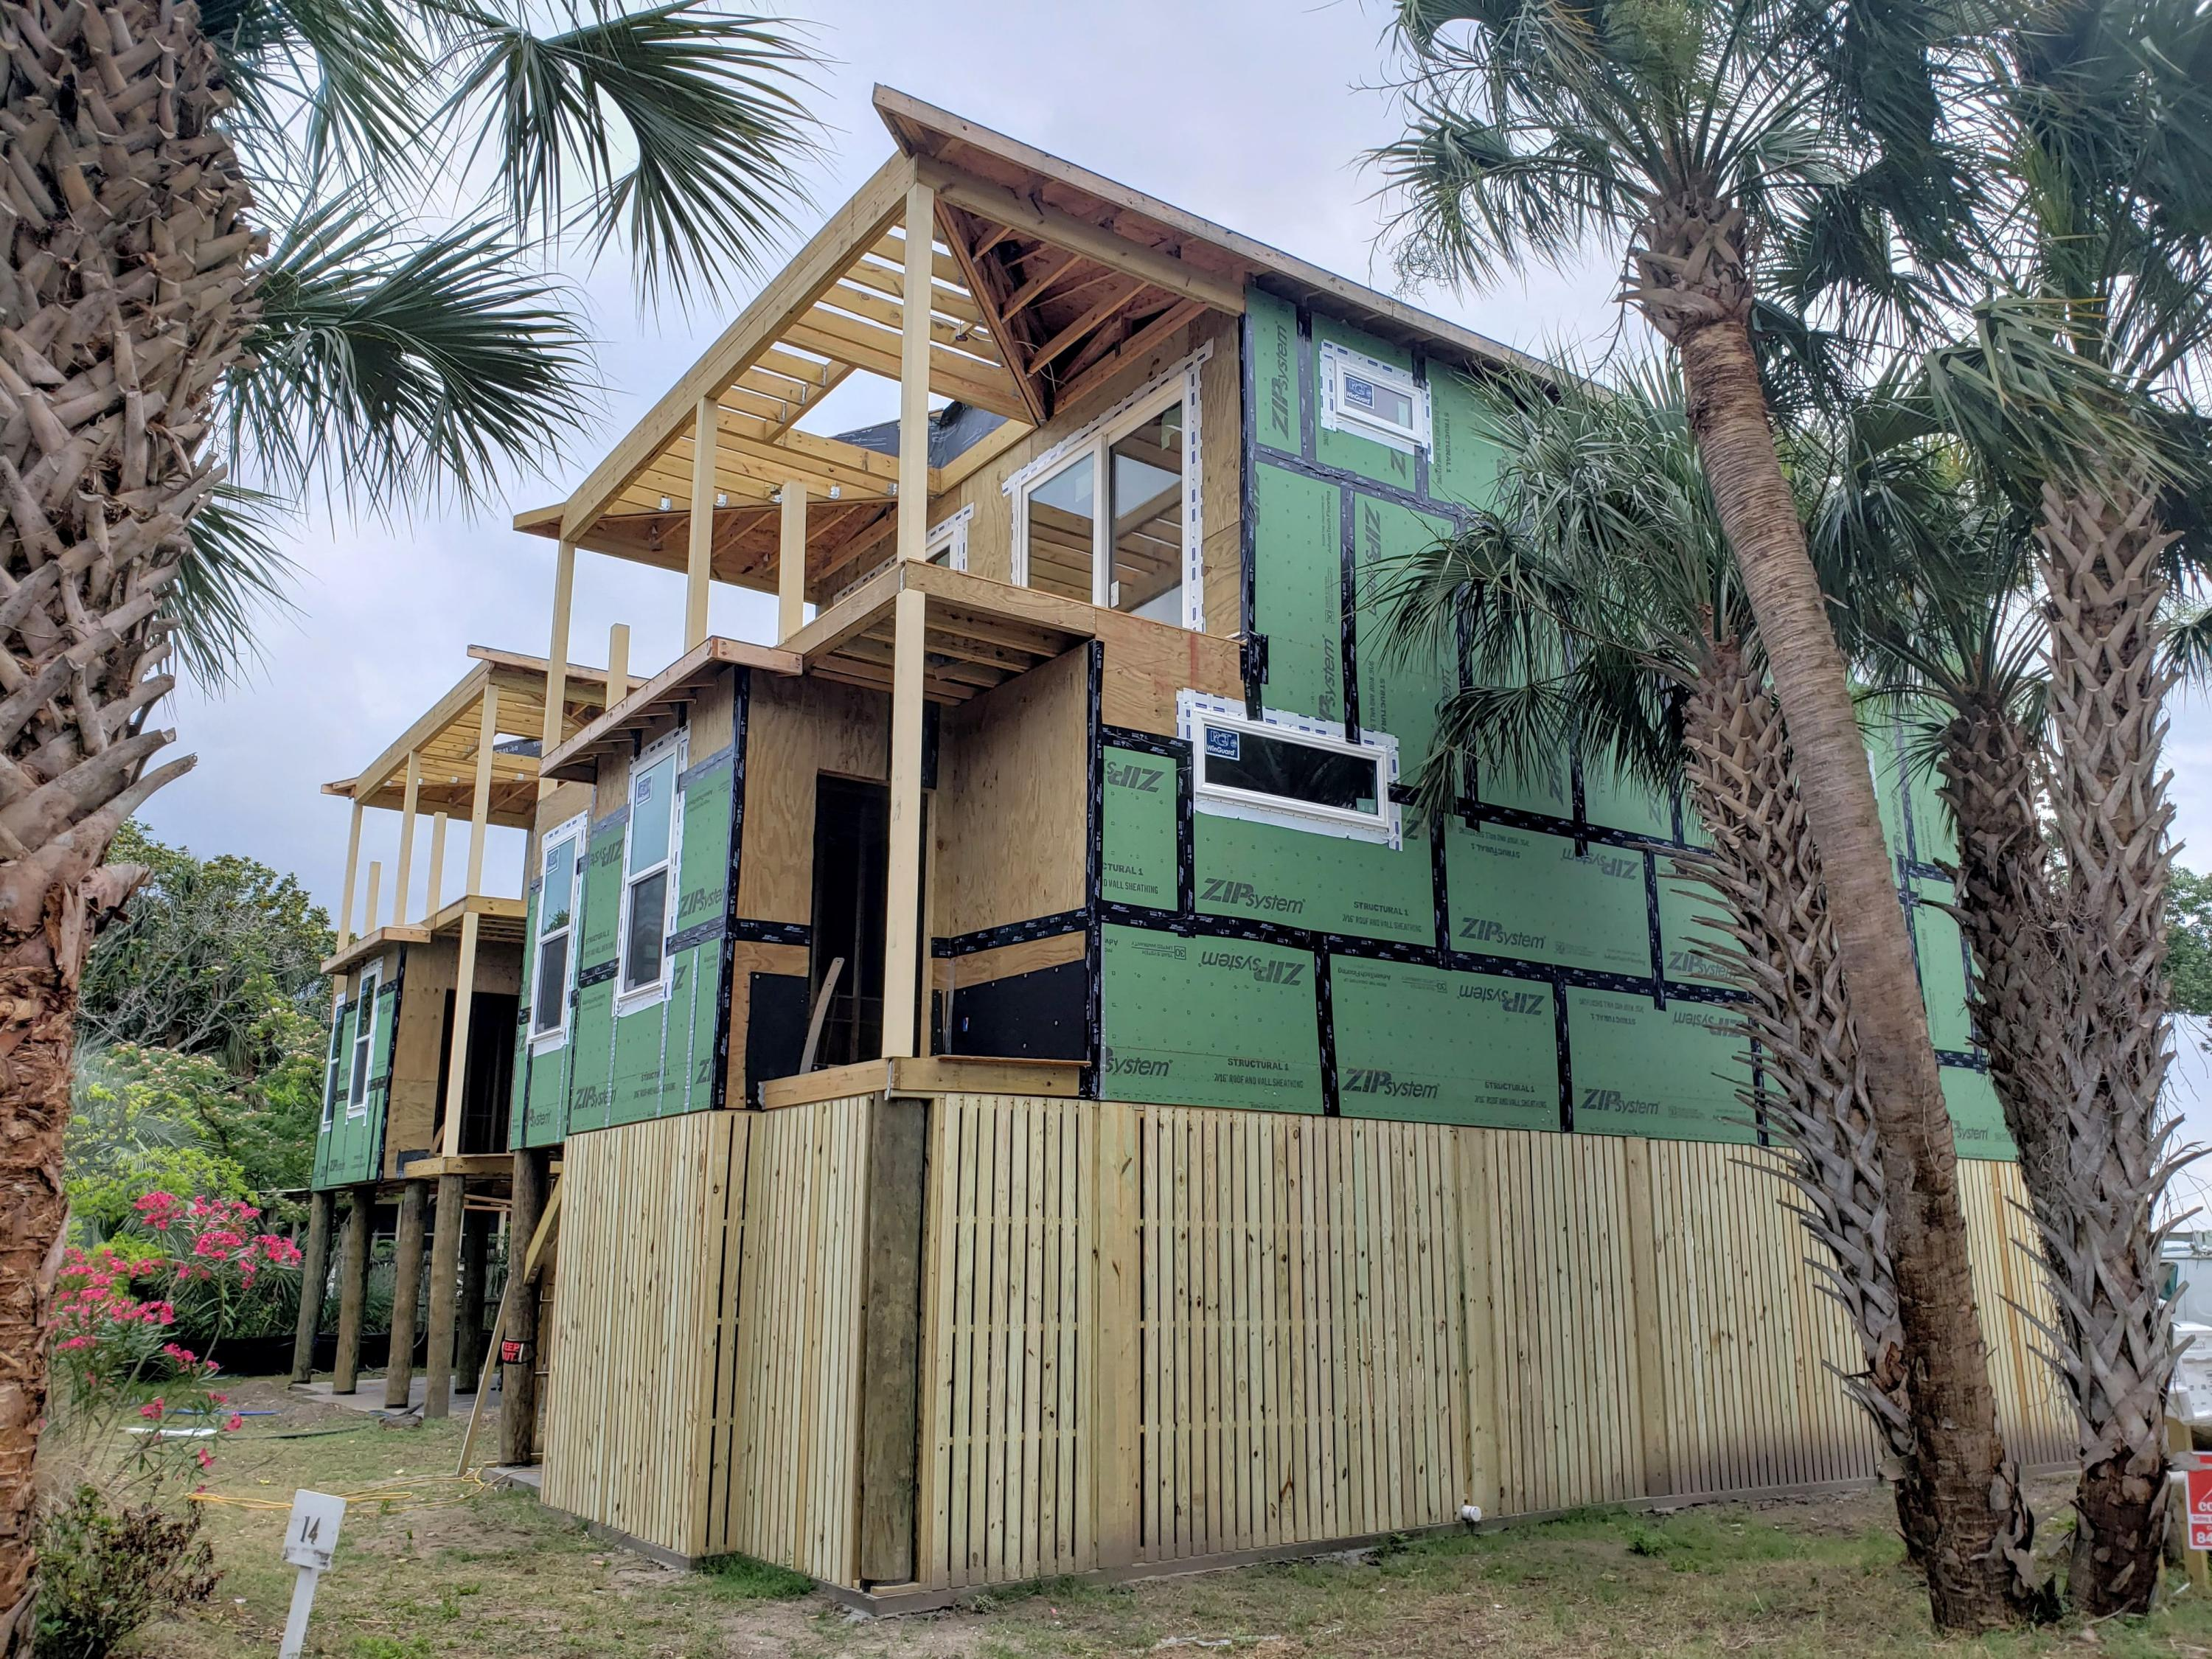 Mariners Cay Homes For Sale - 1004 Mariners Cay, Folly Beach, SC - 51